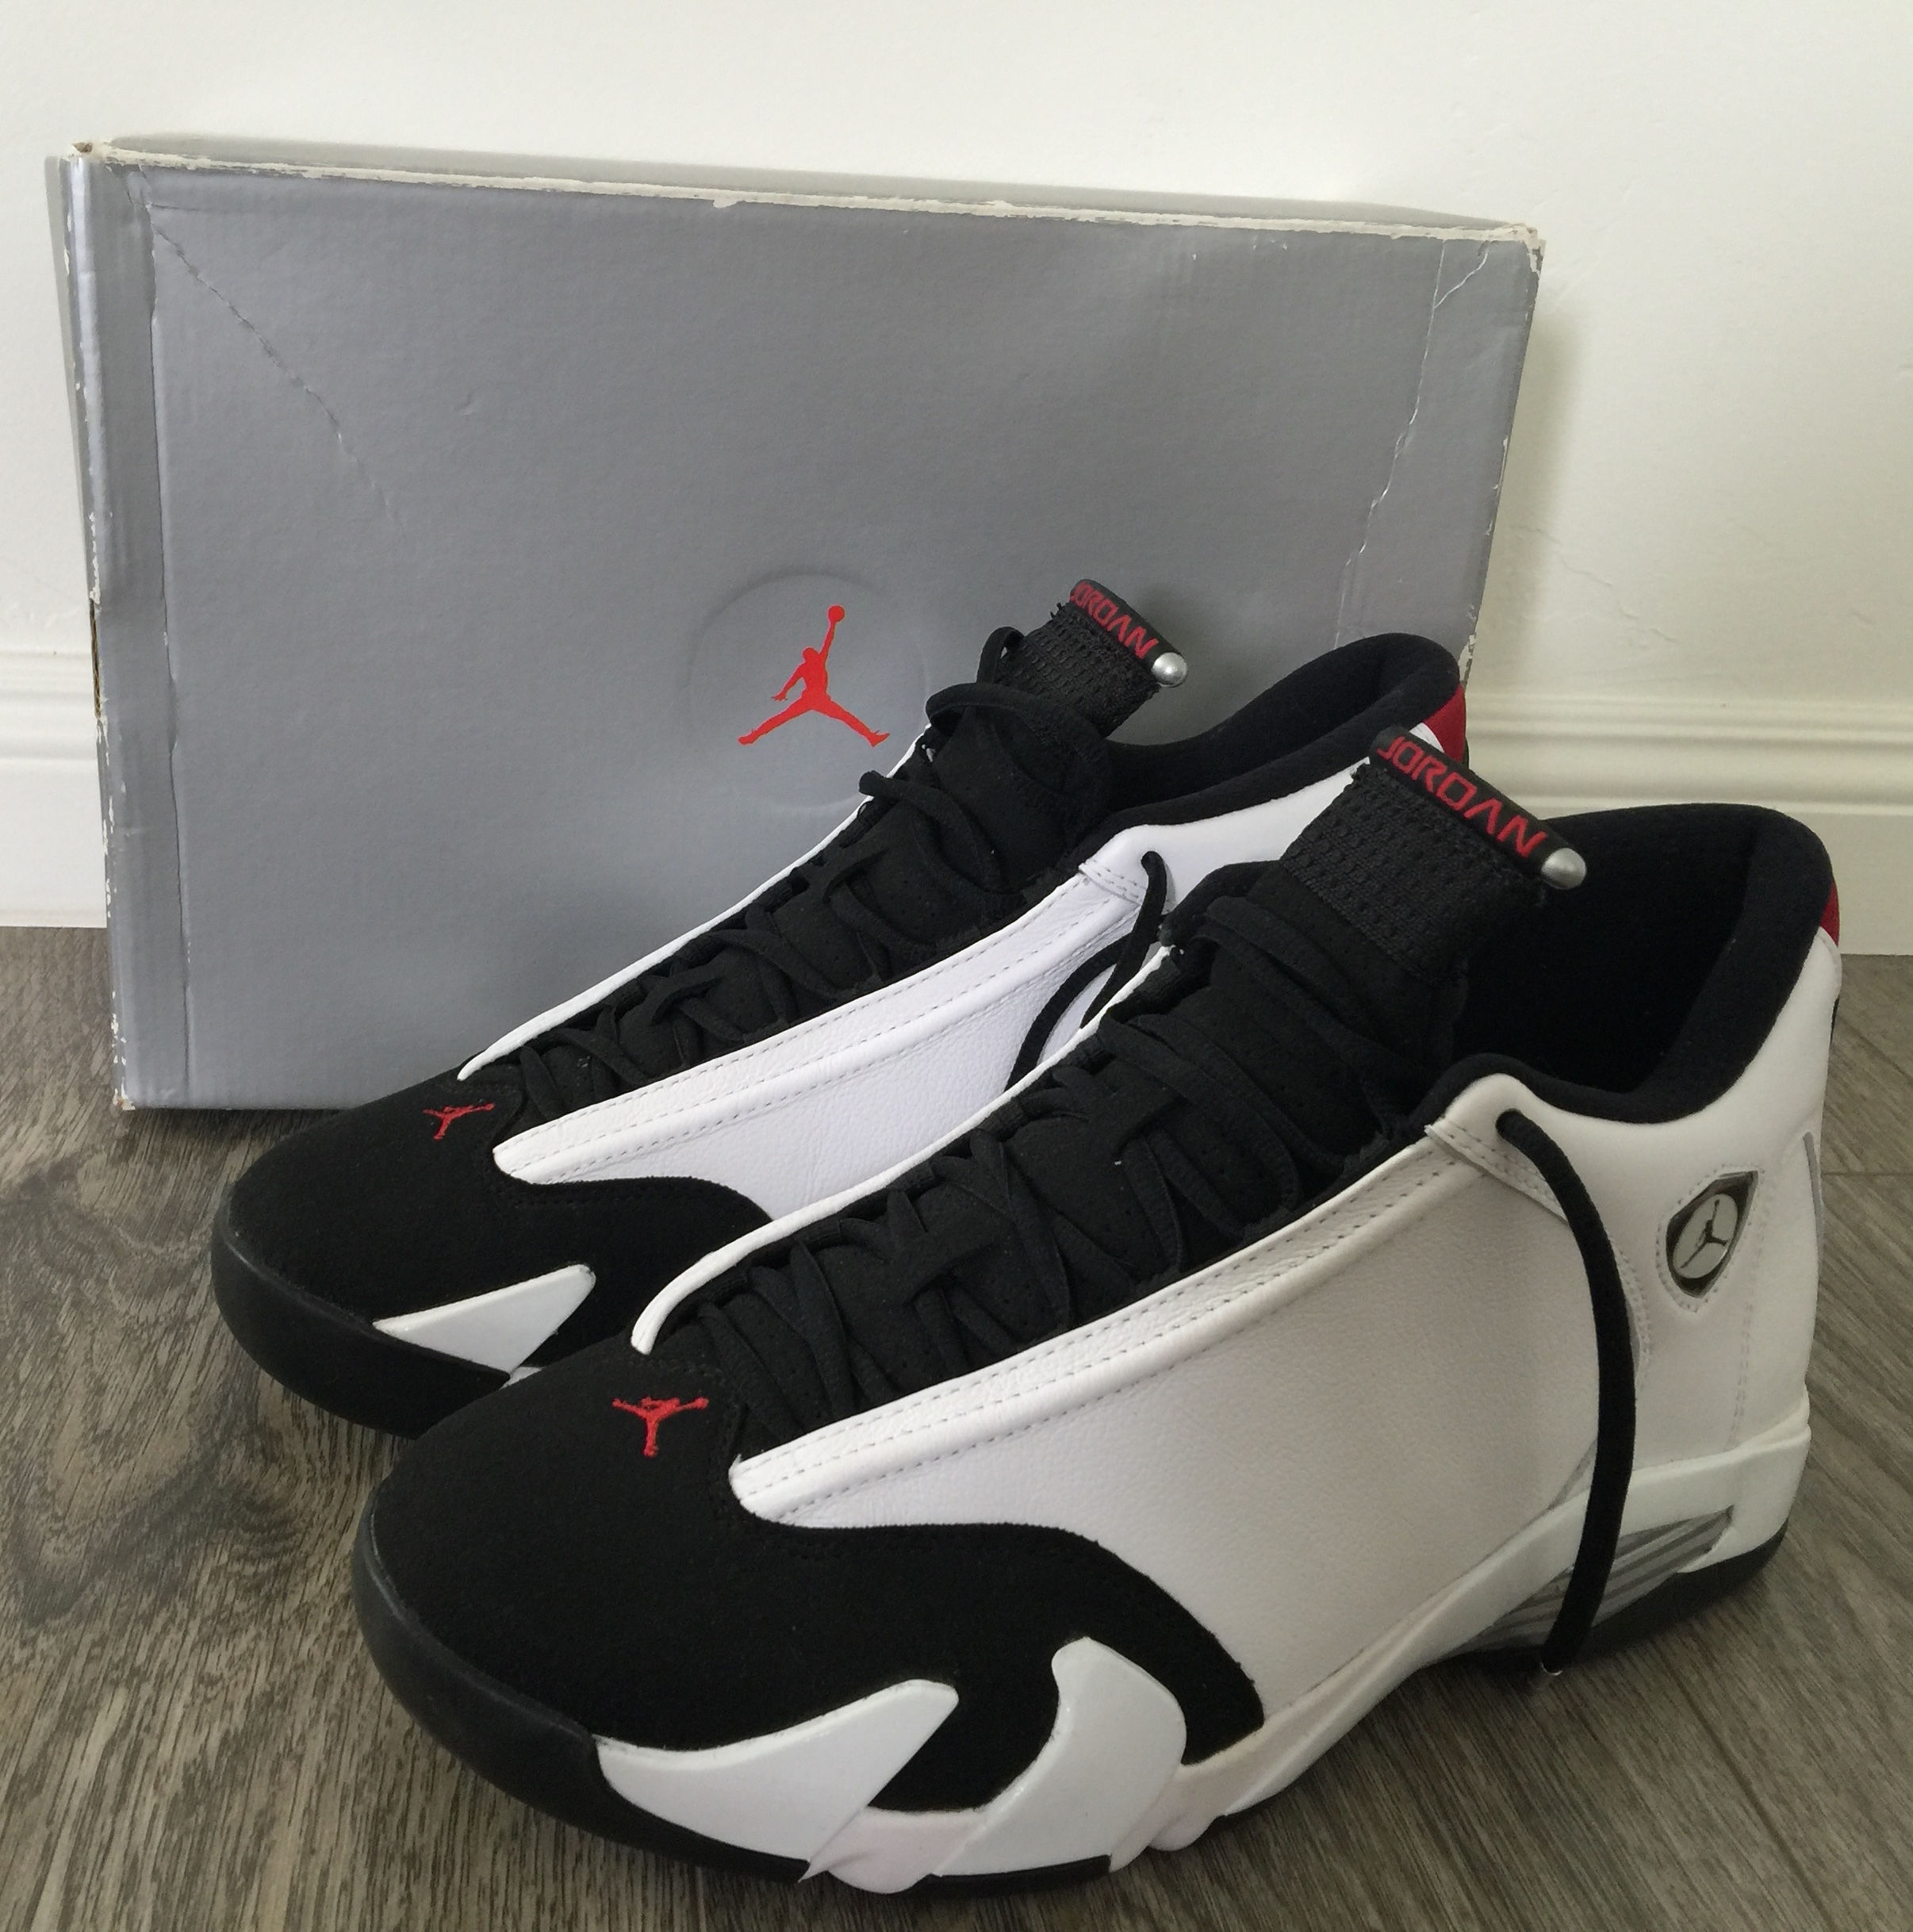 Jordan Retro  Black White Red Dog Quickstrike Shoes Release